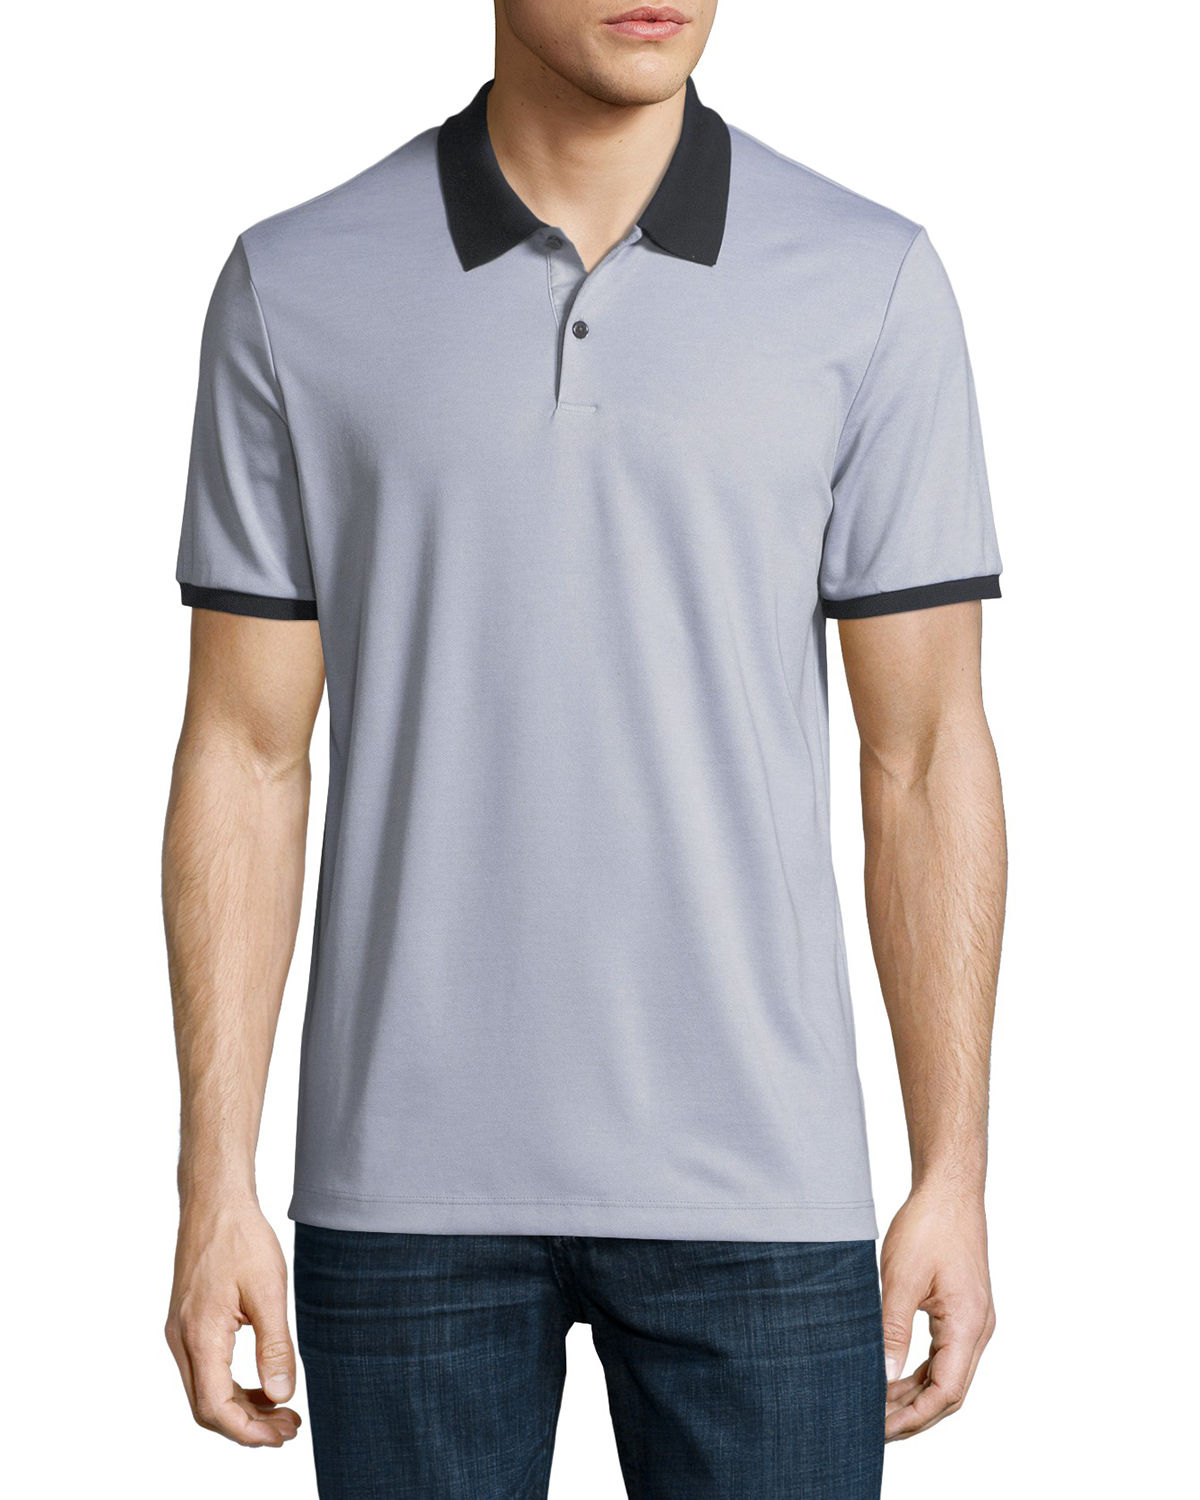 Current Pique Polo Shirt